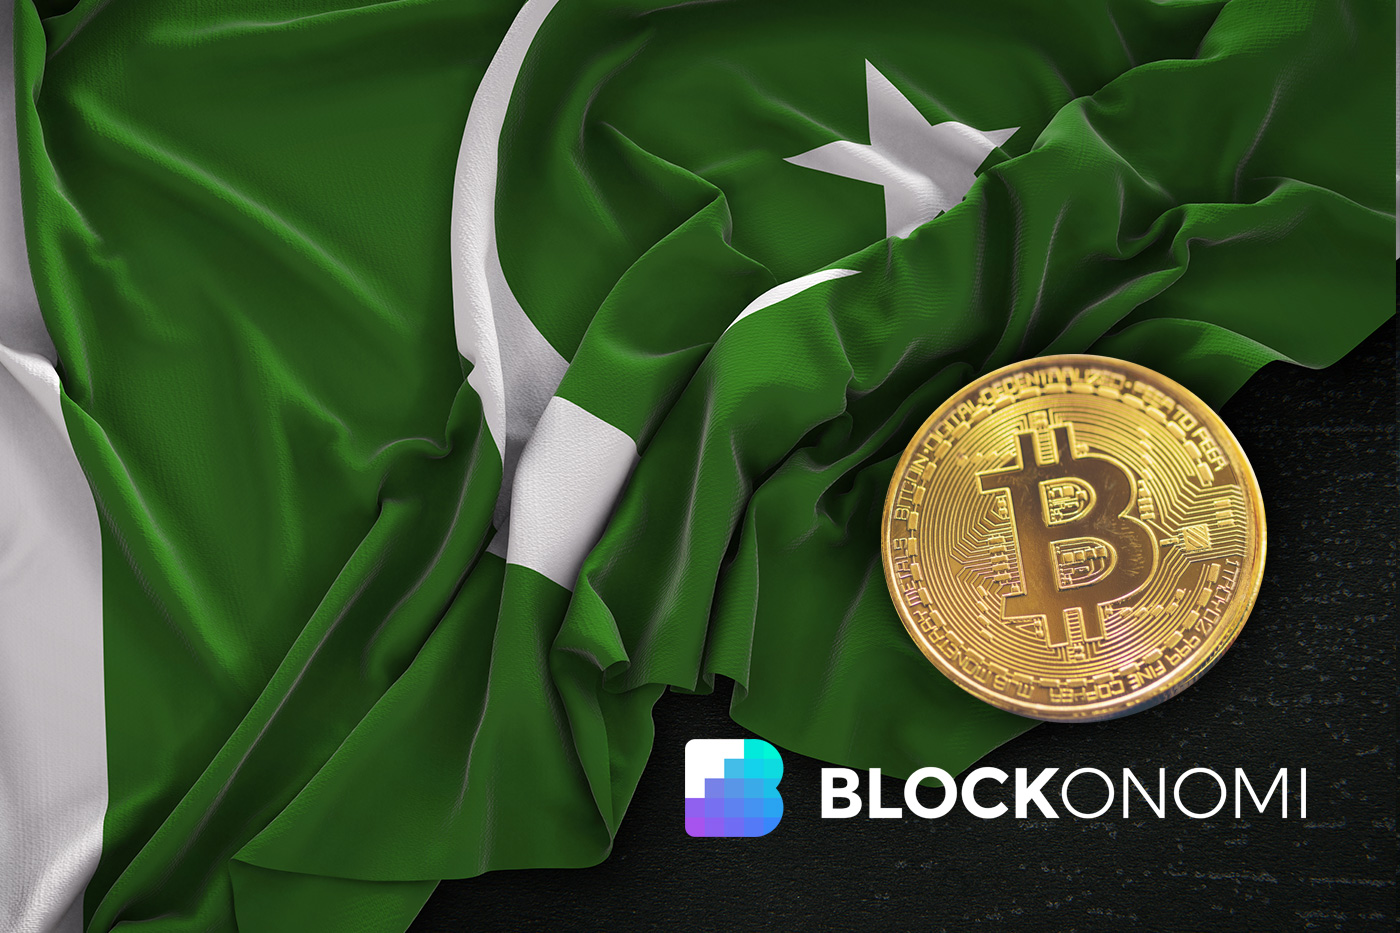 Pakistan to Introduce Bitcoin Regulations Amid Talk of Potential FATF Blacklisting